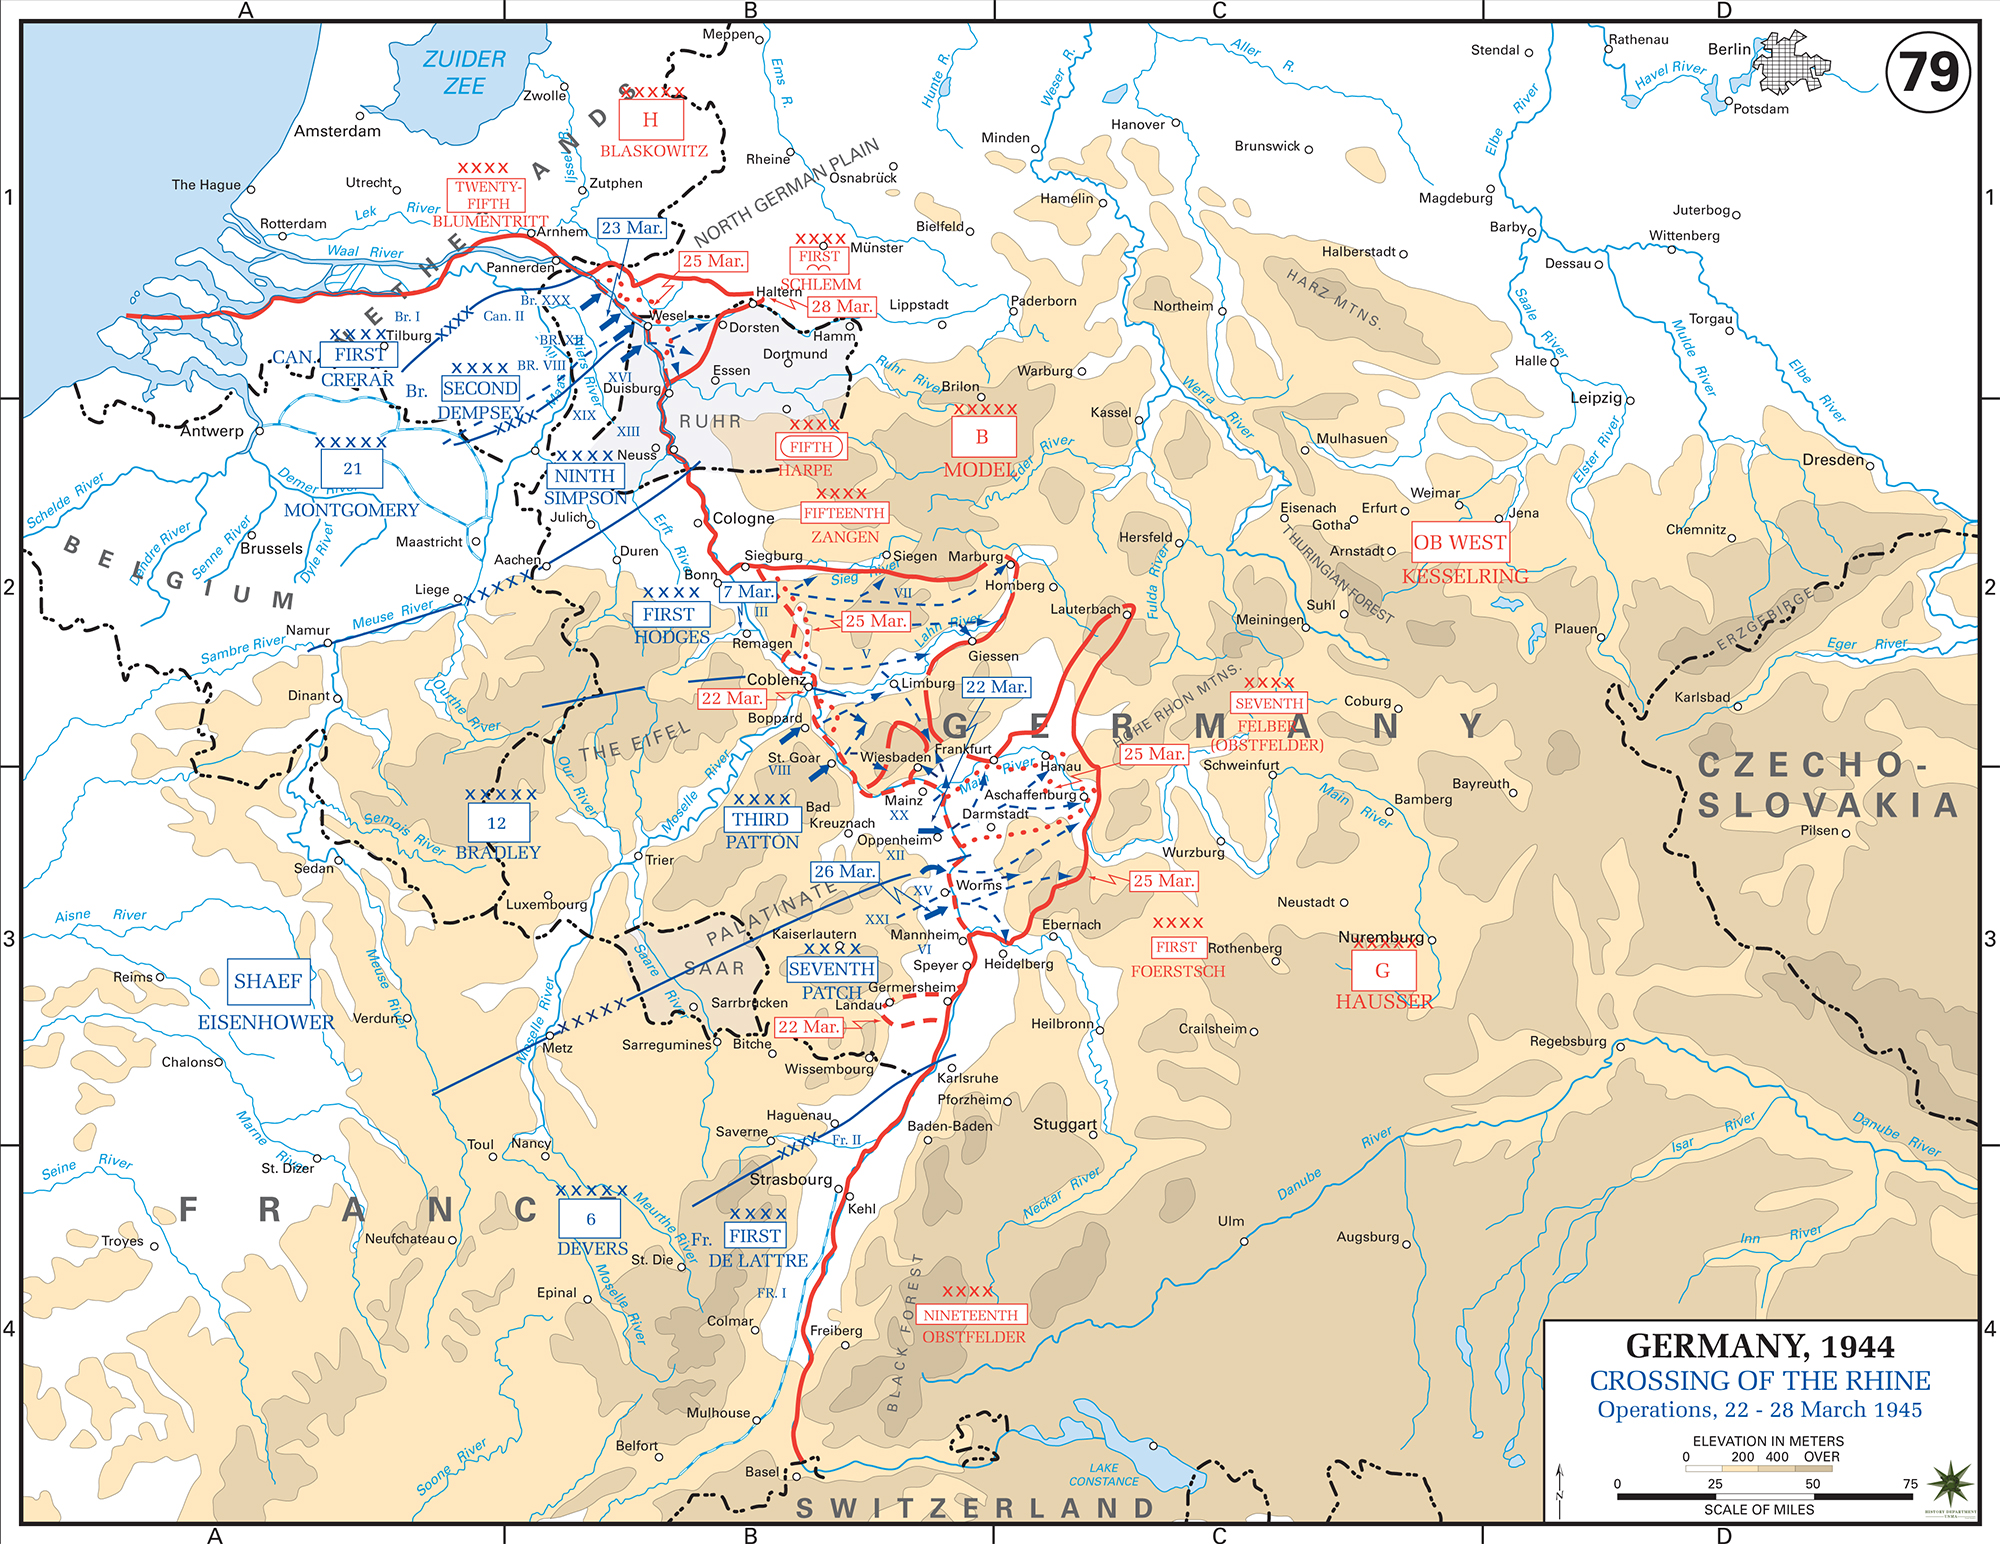 map of world war ii european western front crossing of the rhine river. map of wwii crossing of the rhine